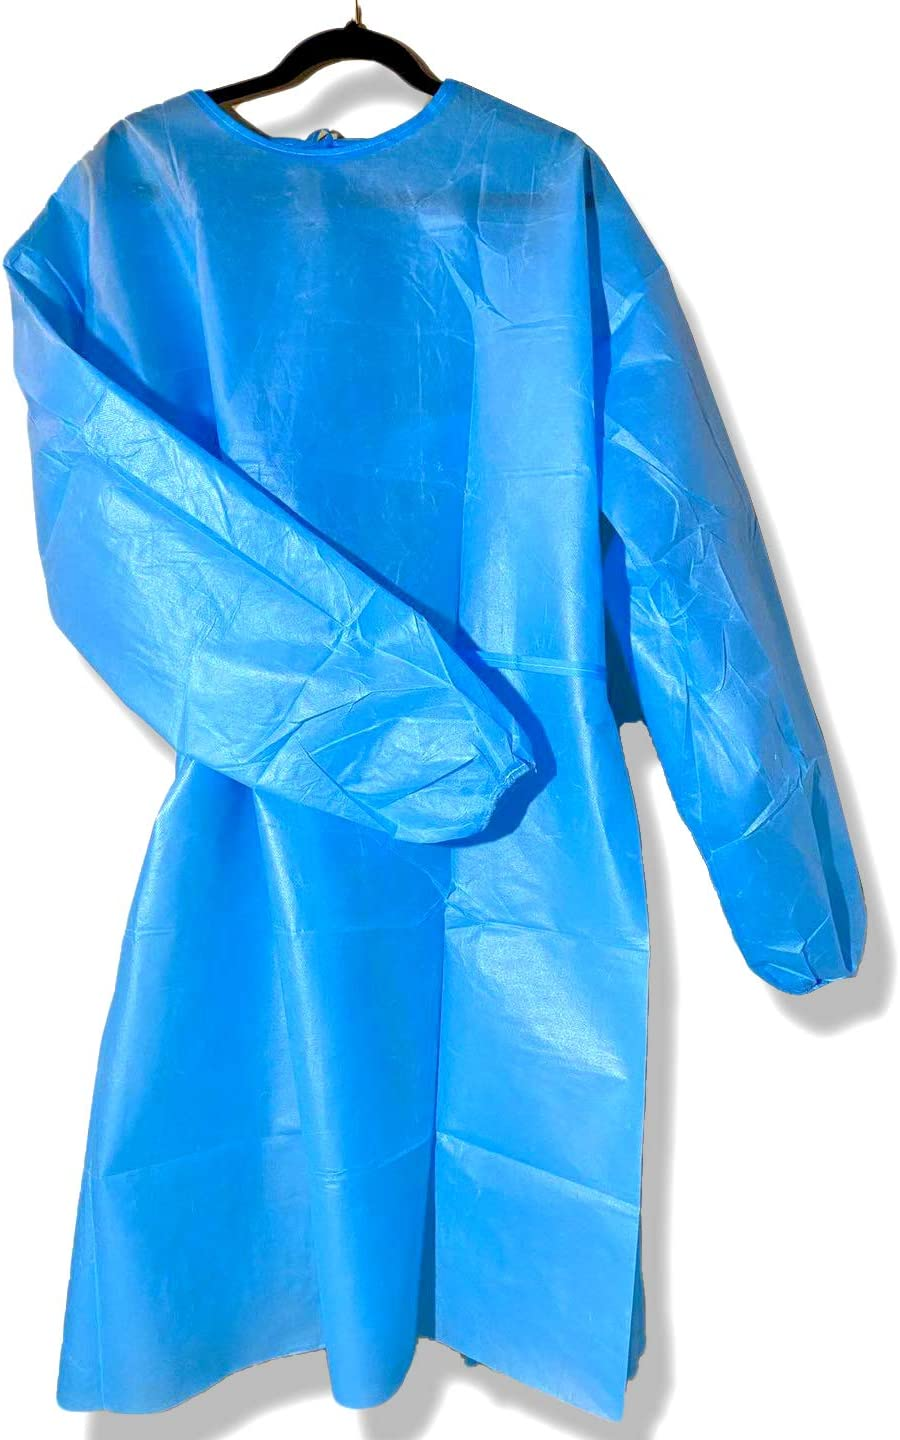 SIPA 20 30 40 Clearance SALE! Limited time! 50PCS Protective Outlet sale feature Suit Disposable Isolation Gown